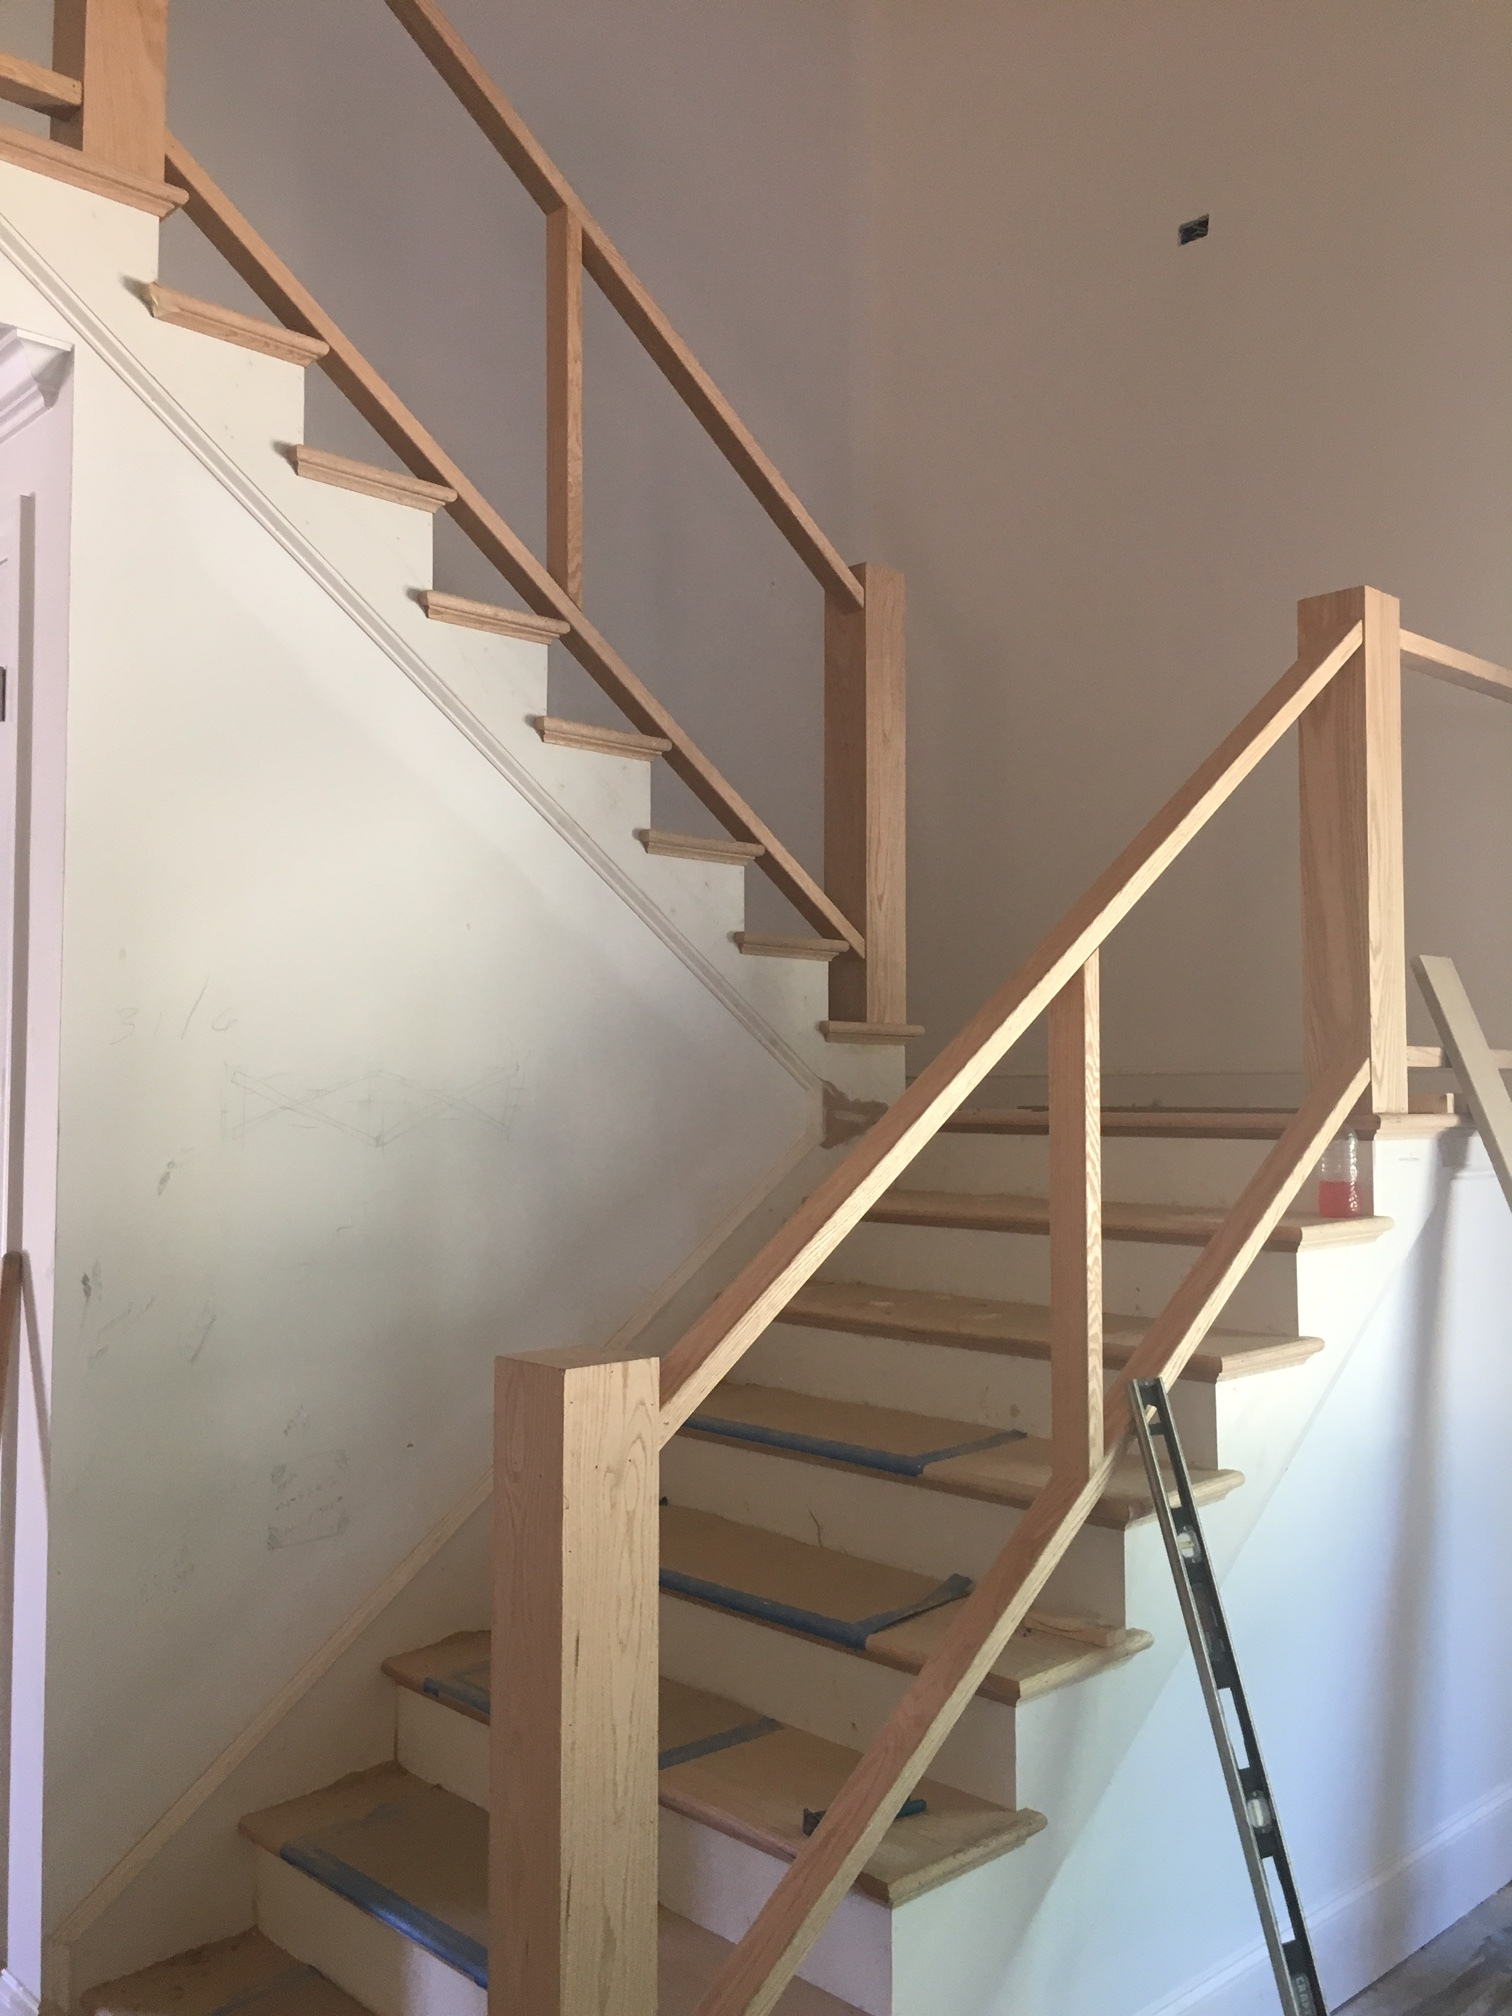 Staircase being built; it will be stained in a similar gray wash like the trusses and to match the floors upstairs.